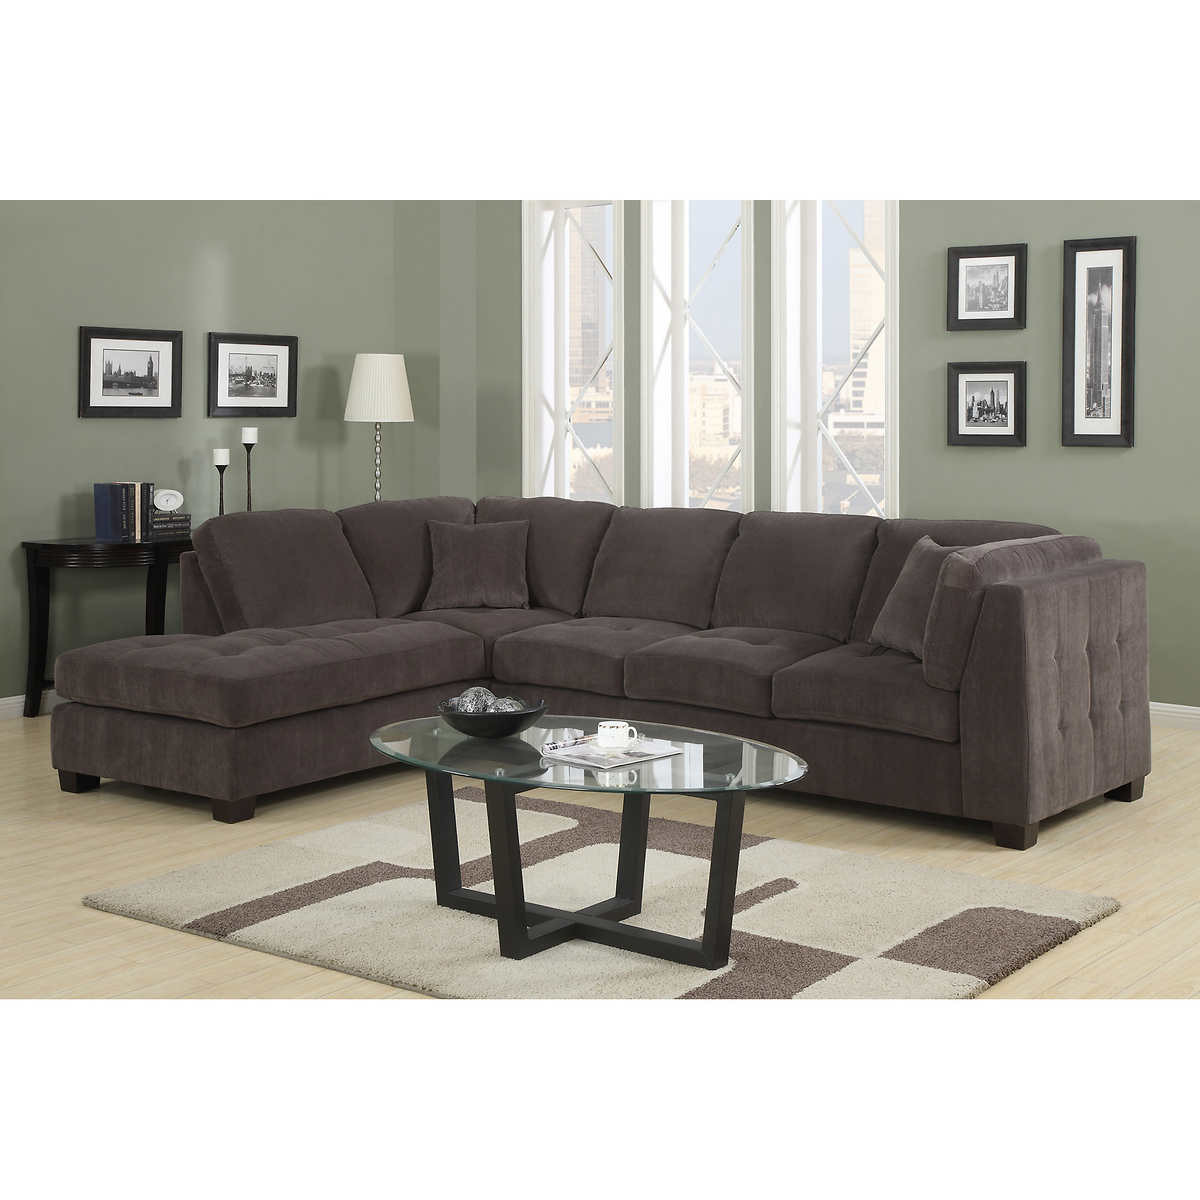 Best ideas about Costco Sofa Set . Save or Pin Gray Sectional Sofa Costco Gray Sectional Sofa Costco Now.